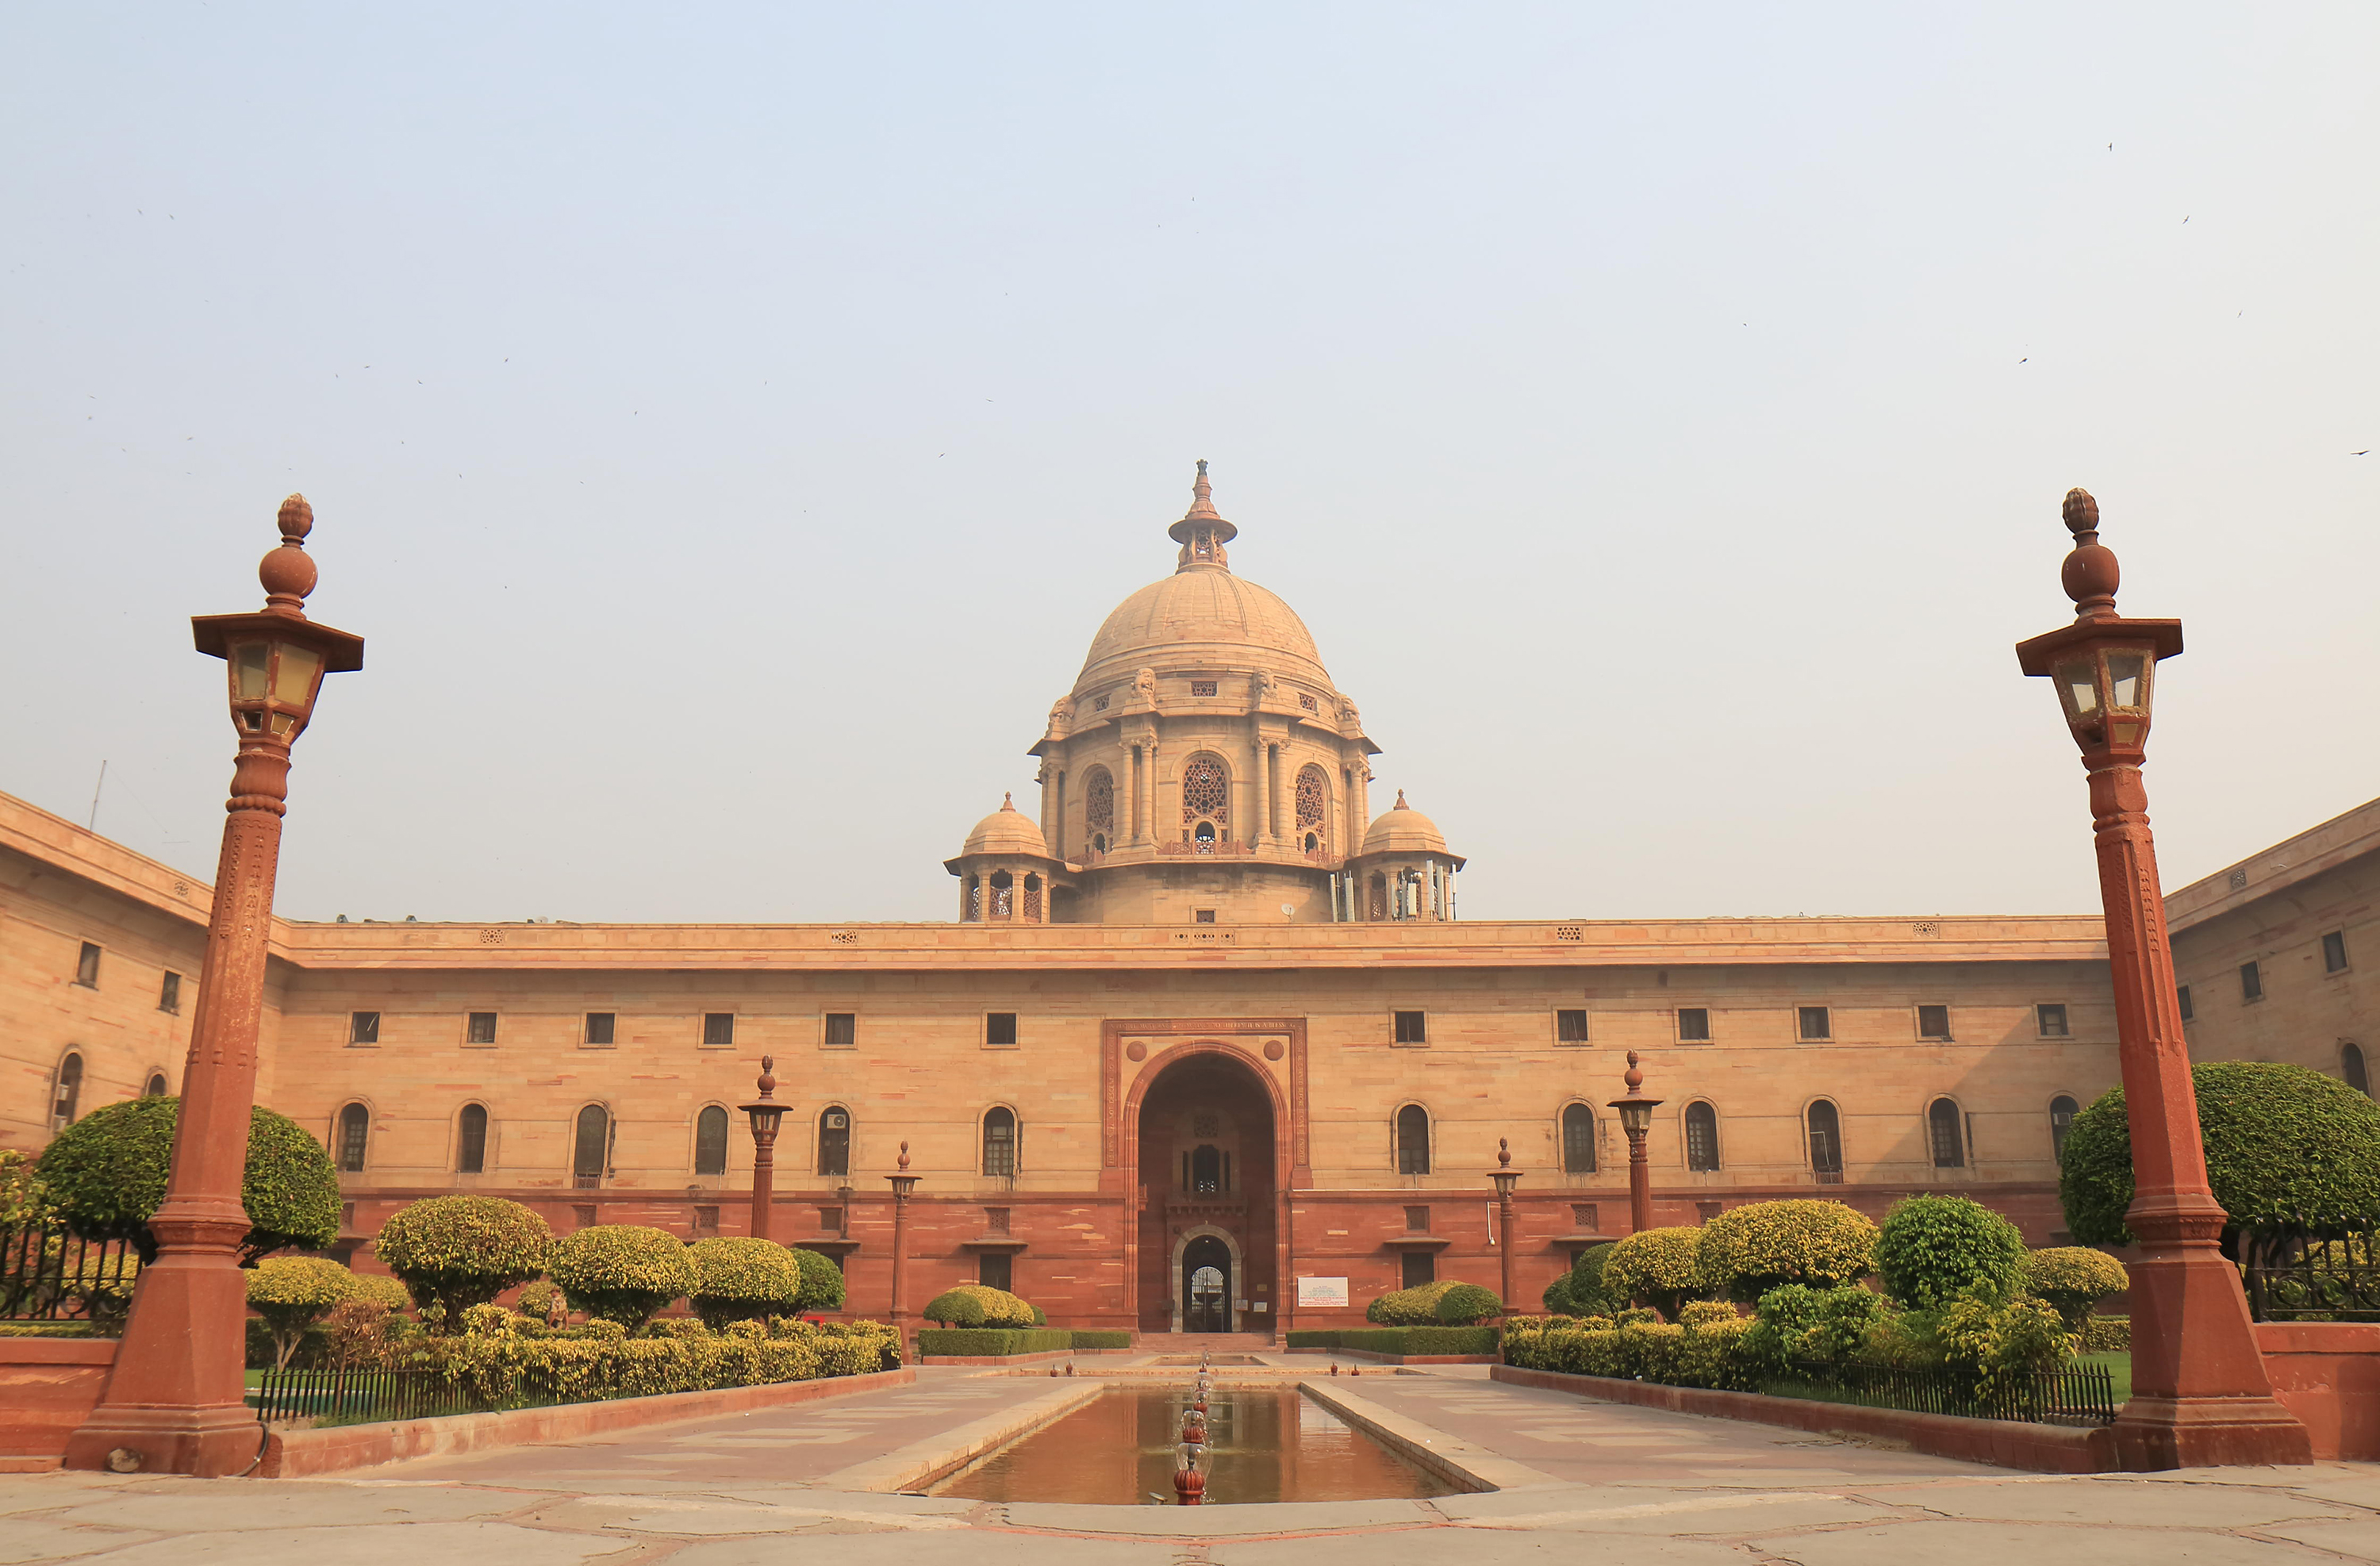 Ministry of Home Affairs office in New Delhi, India.